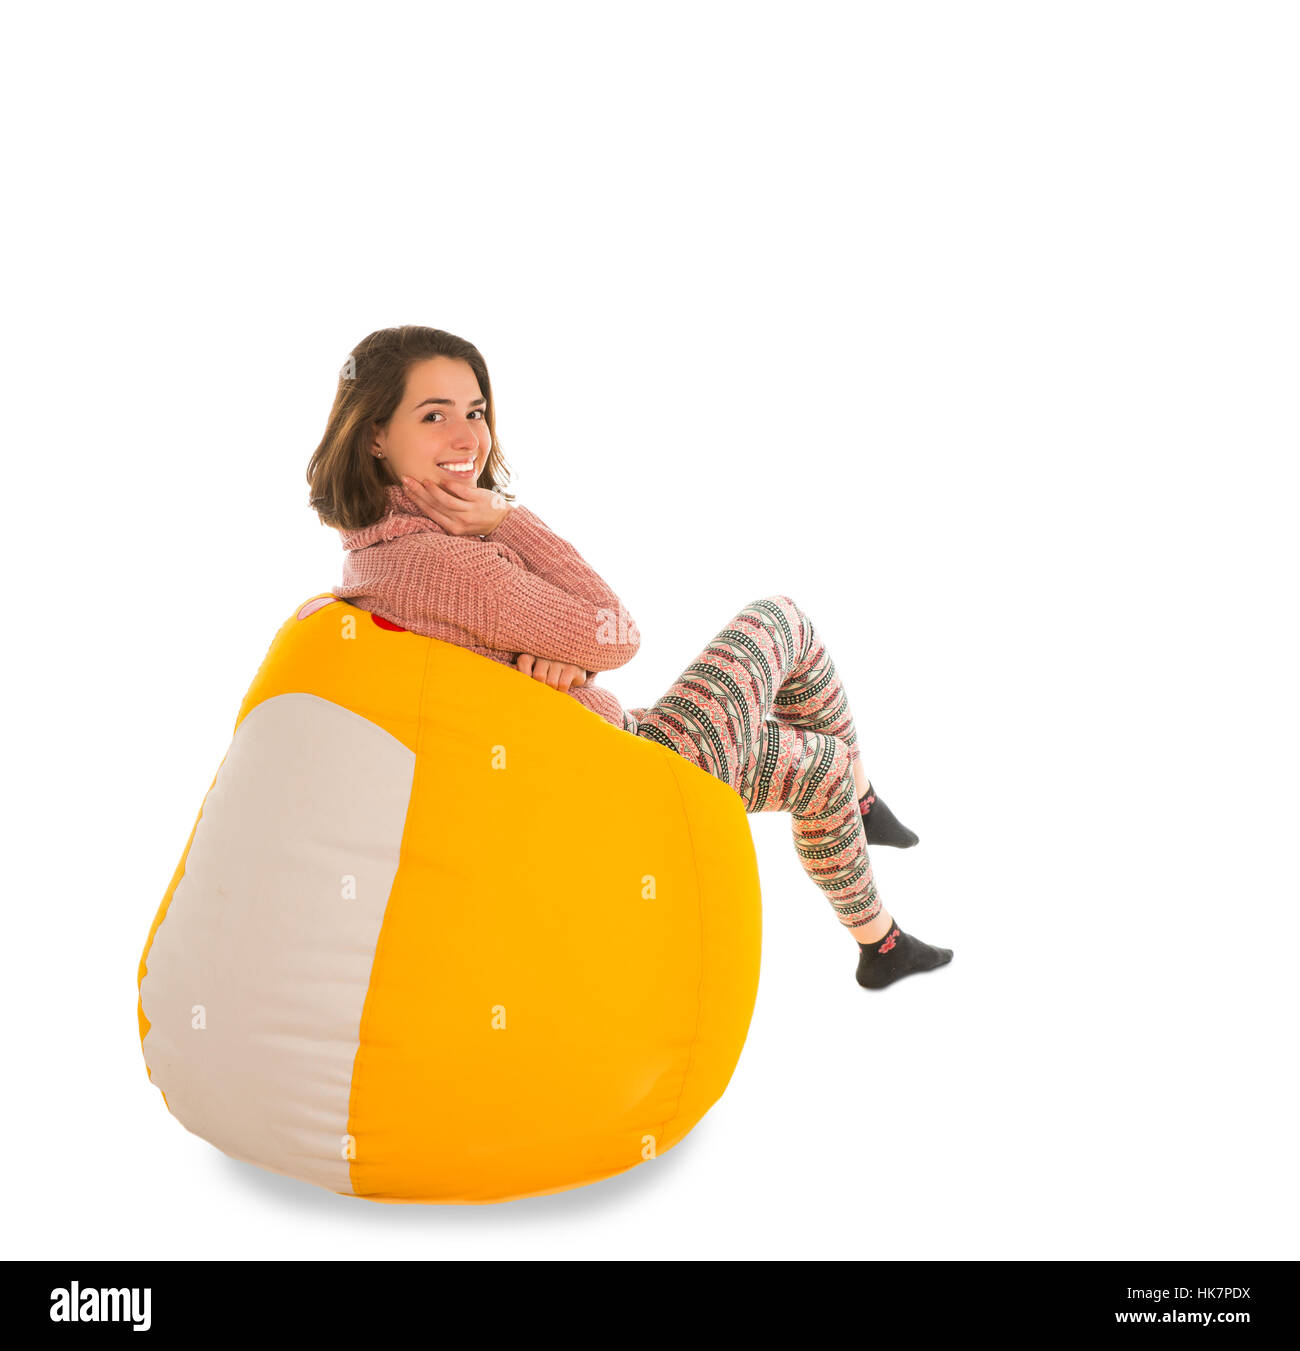 Side View Of Smiling Woman Sitting On Yellow Beanbag Chair For Living Room Or Other Isolated White Background